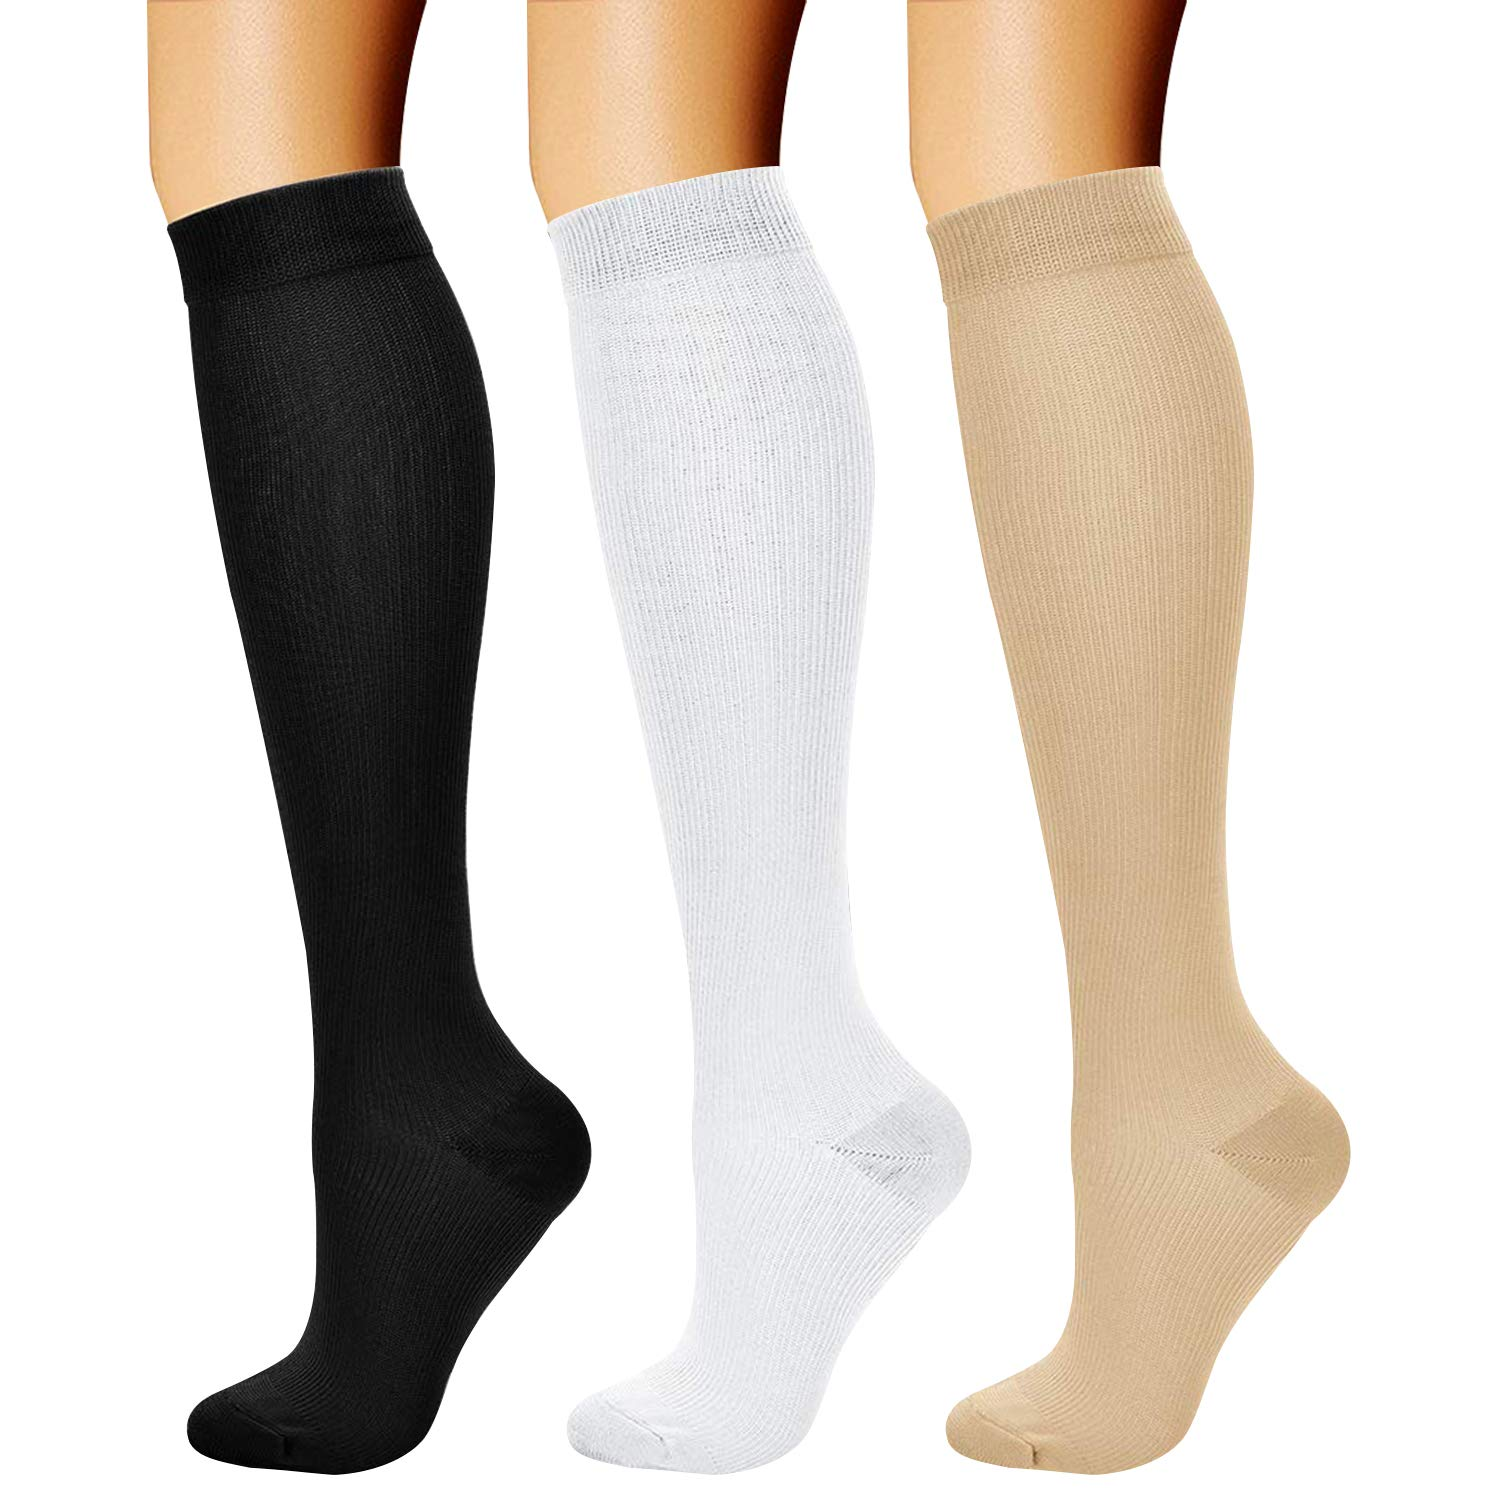 CHARMKING Compression Socks (3 Pairs) 15-20 mmHg is Best Athletic & Medical for Men & Women, Running, Flight, Travel, Nurses, Edema - Boost Performance, Blood Circulation & Recovery (S/M, Assorted 02) by CHARMKING